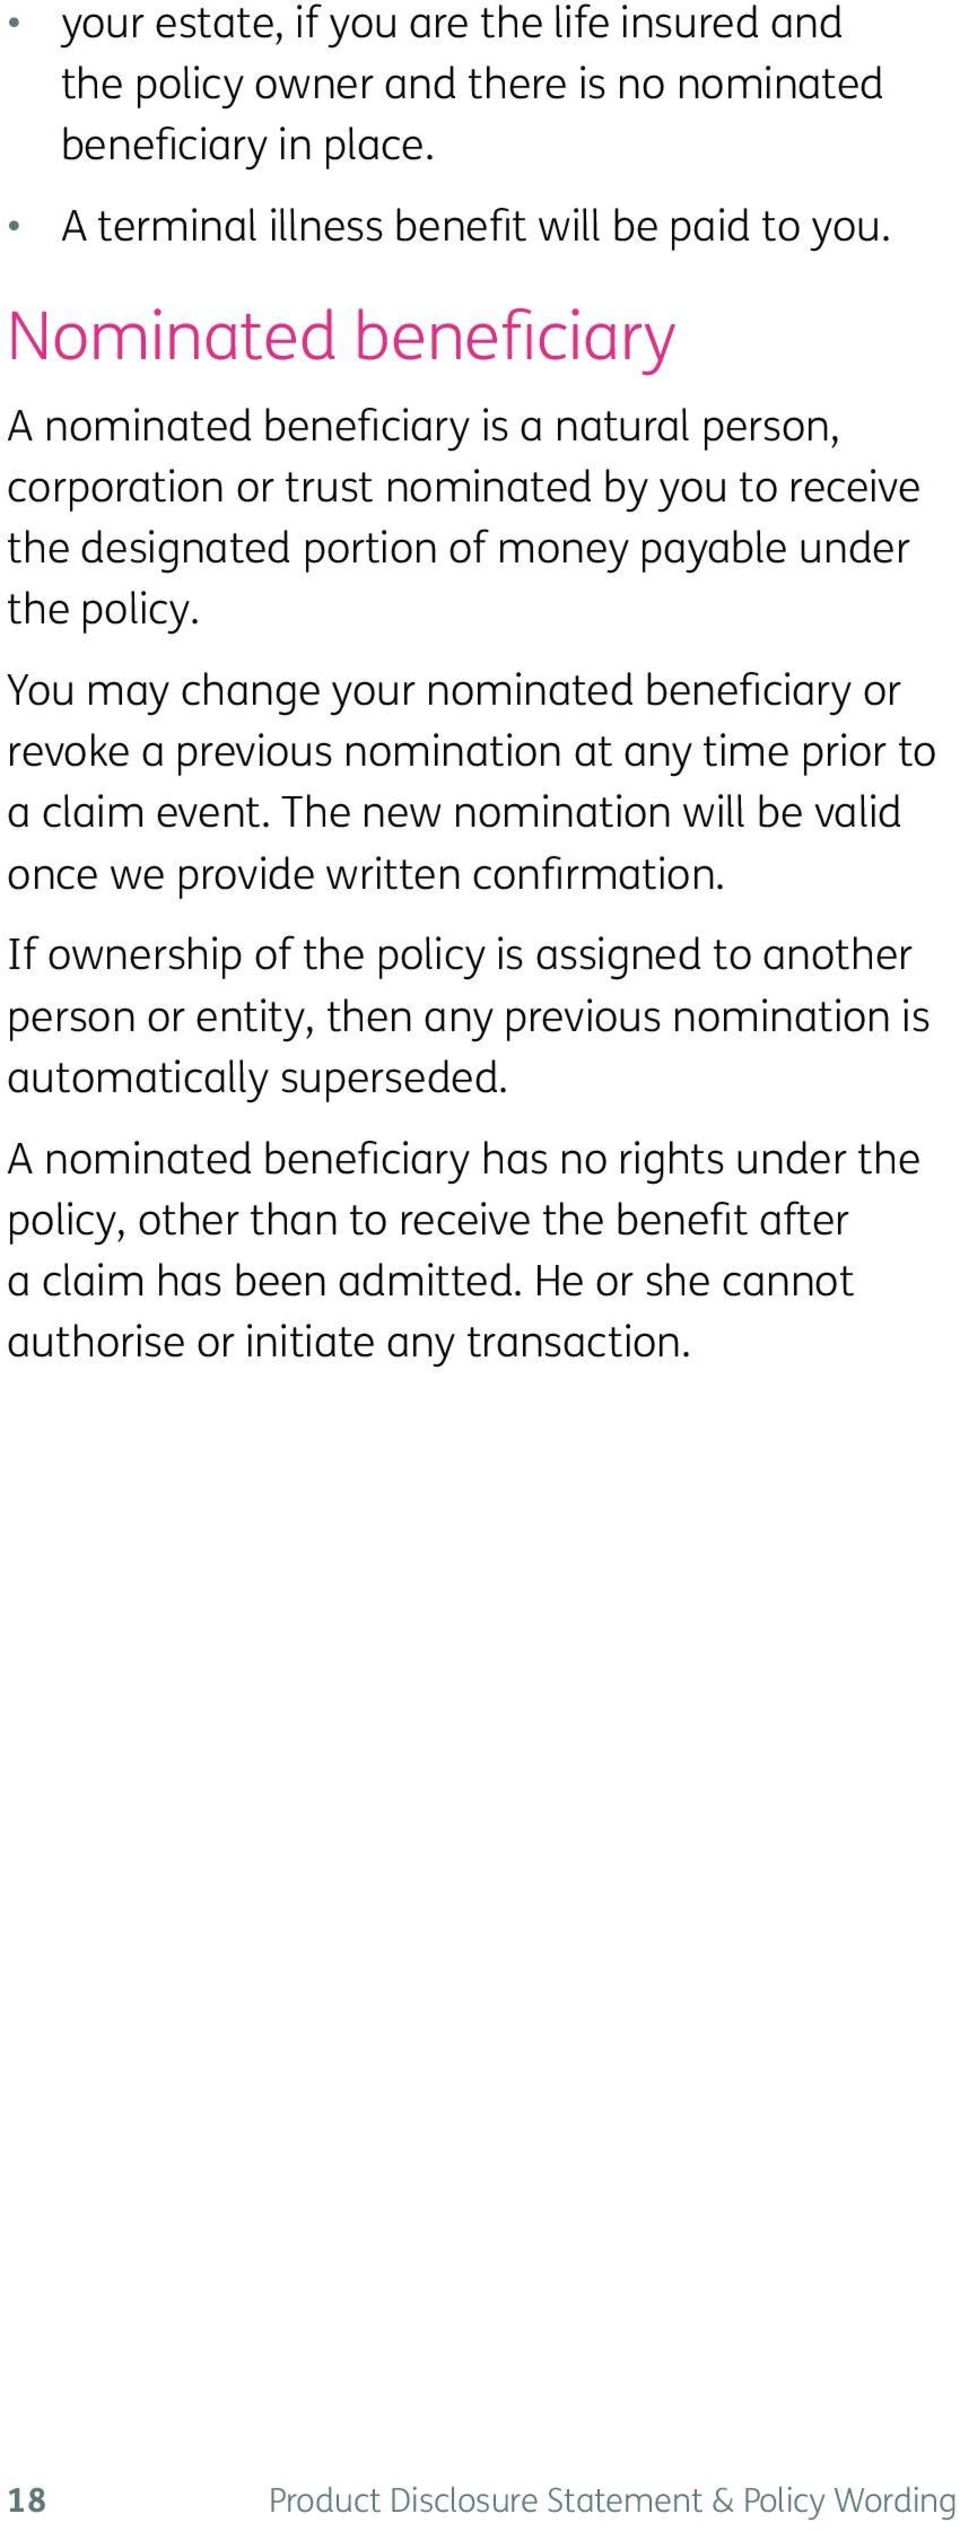 You may change your nominated beneficiary or revoke a previous nomination at any time prior to a claim event. The new nomination will be valid once we provide written confirmation.